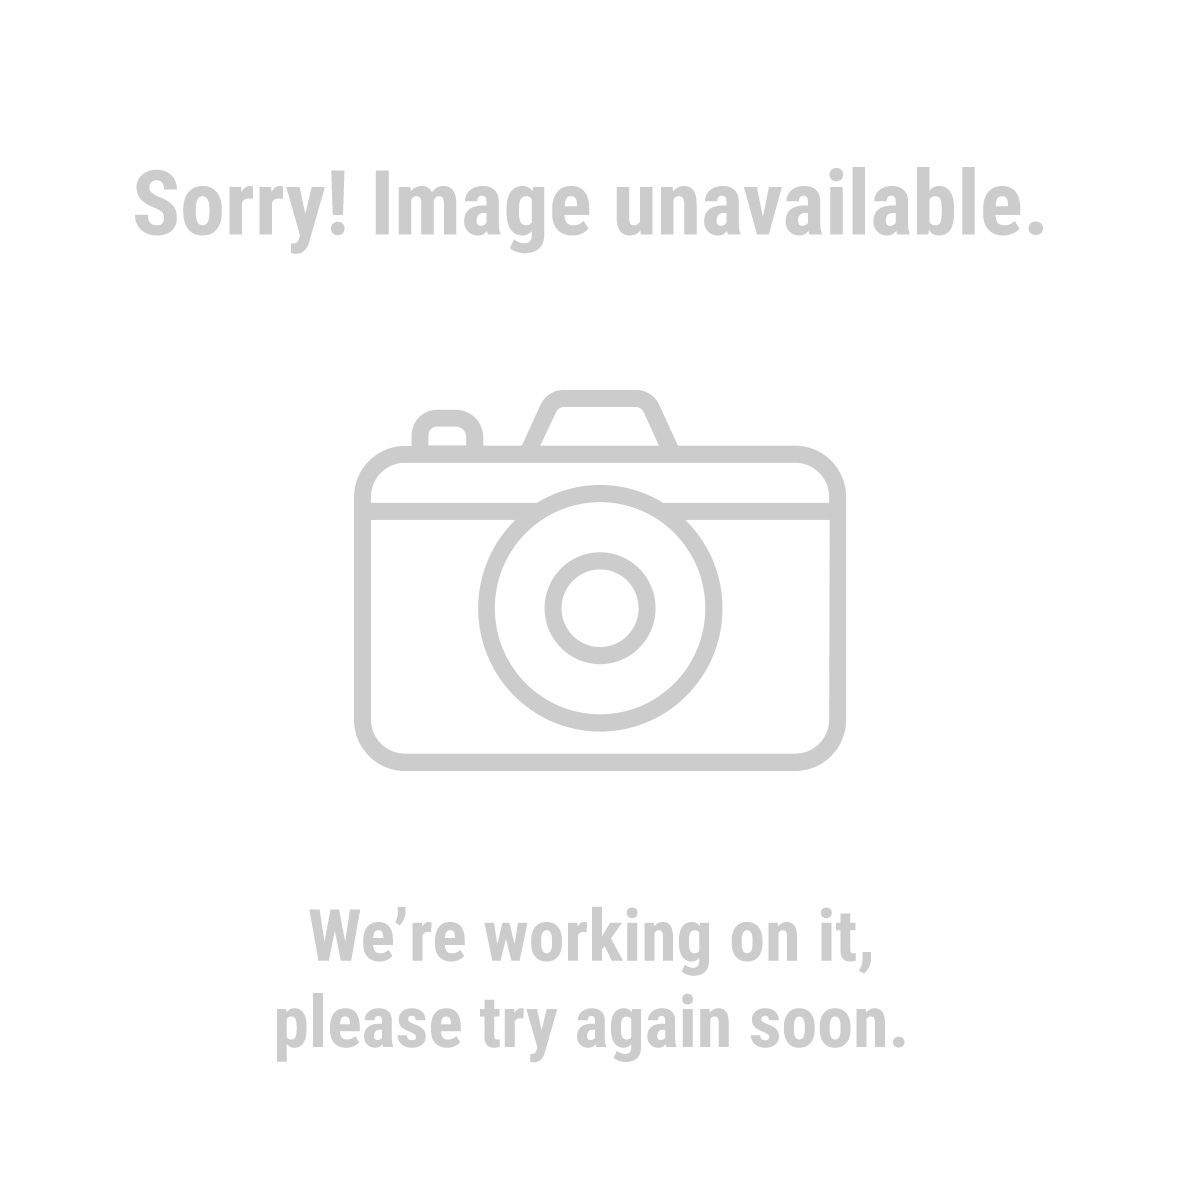 HFT 47302 4 Piece Ball Stretch Cord Set